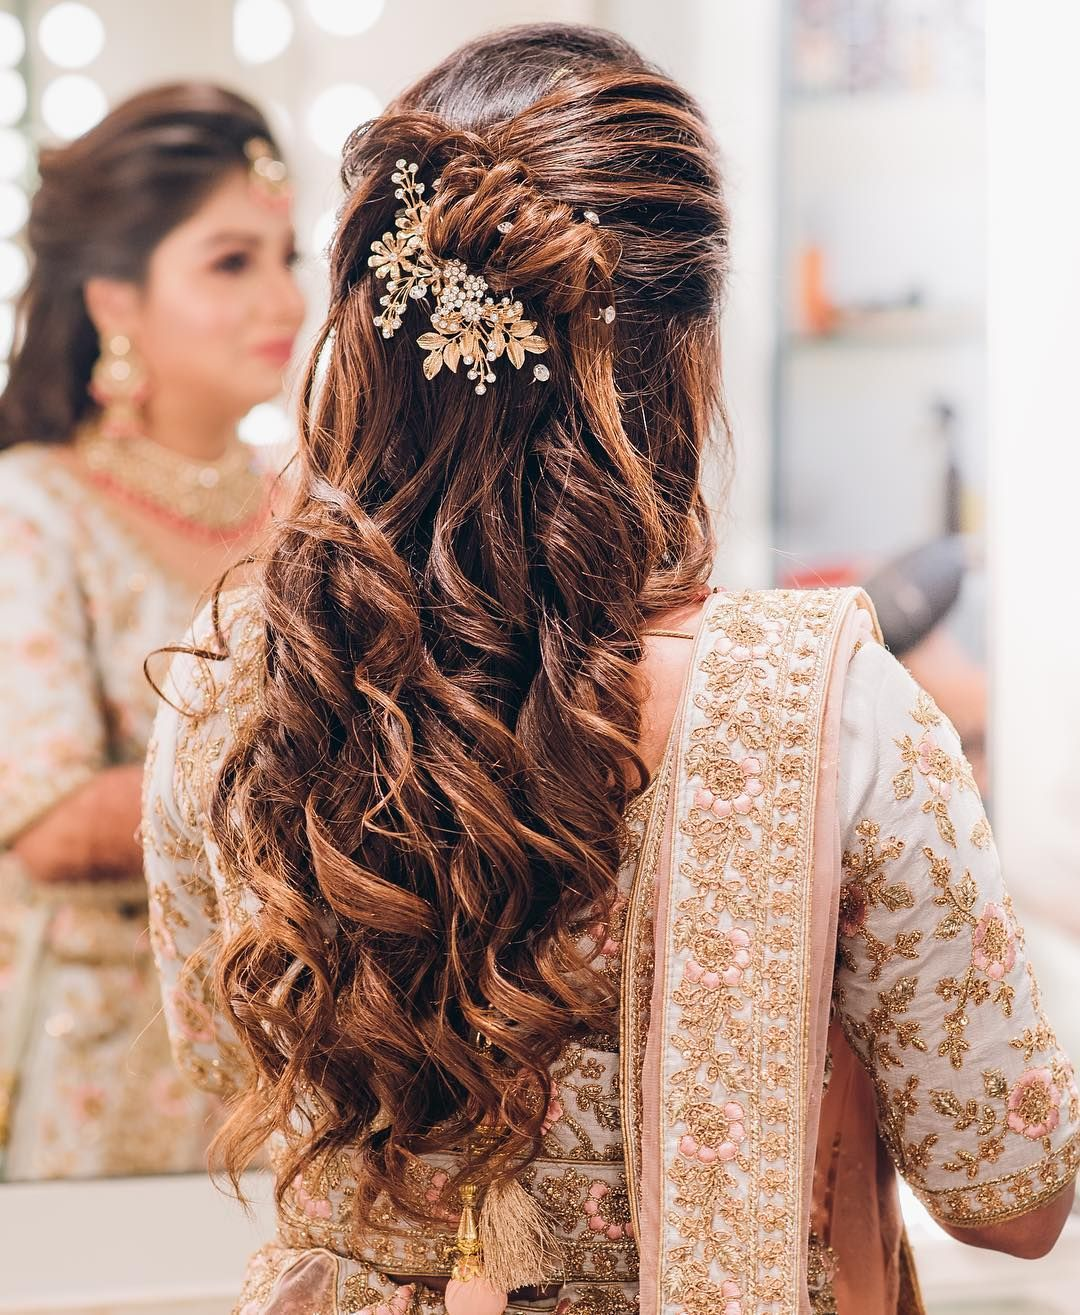 Soft Curls With Pretty Accessory Engagement Hairstyles Braided Hairstyles For Wedding Hair Styles